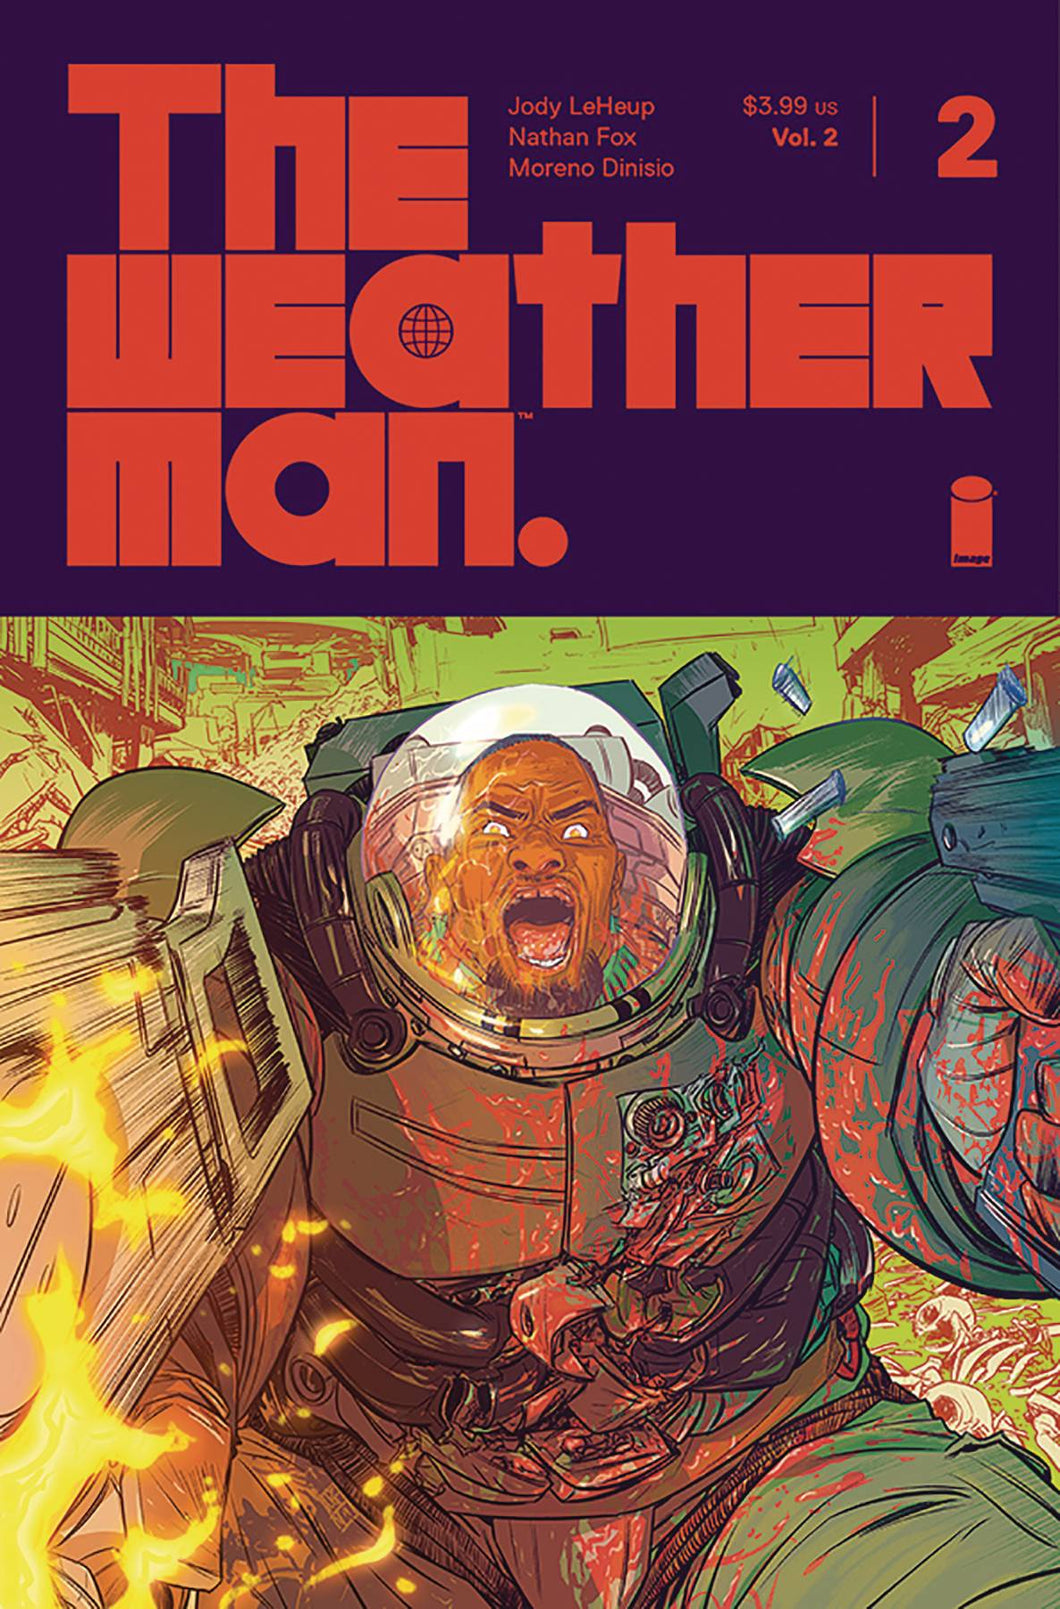 WEATHERMAN VOL 2 #2 CVR A FOX 07/24/19 FOC 07/01/19